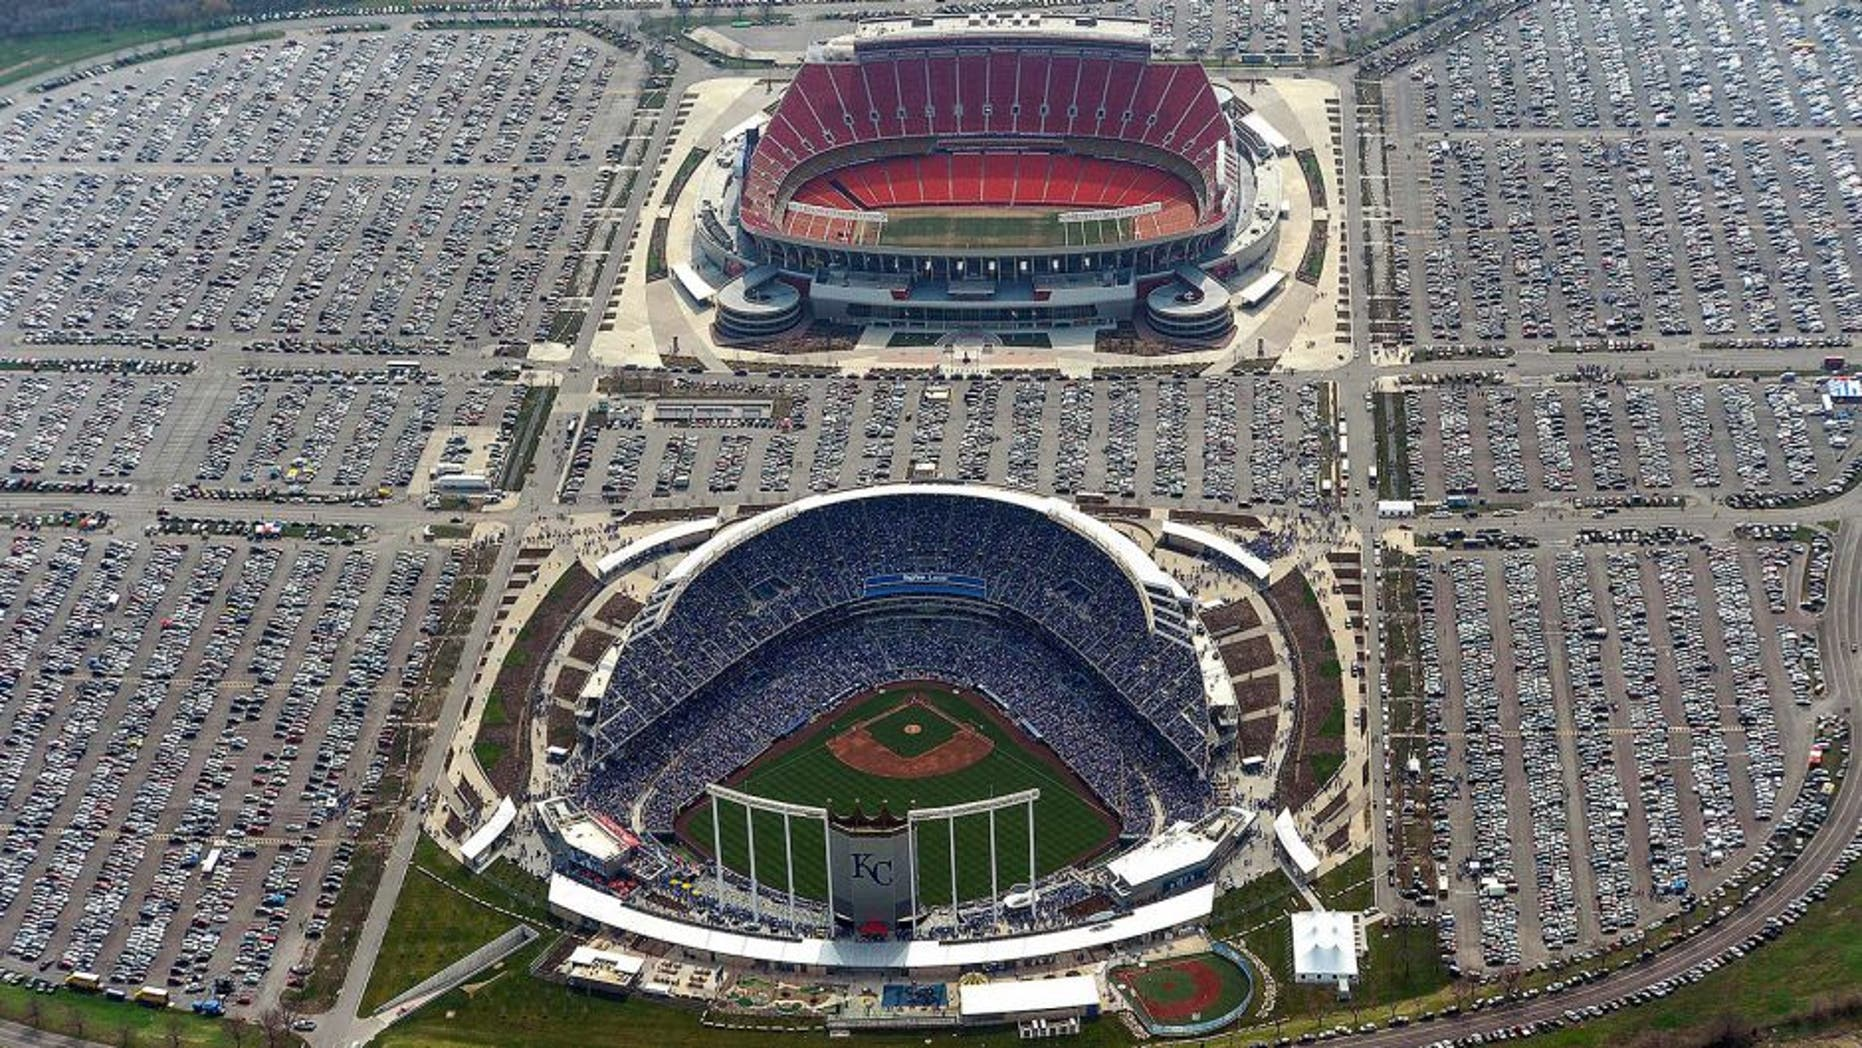 April 08, 2013; Kansas City, MO, USA; A general aerial view during the opening day game between the Minnesota Twins and the Kansas City Royals at Kauffman Stadium. Also pictured is Arrowhead Stadium. Mandatory Credit: Denny Medley-USA TODAY Sports